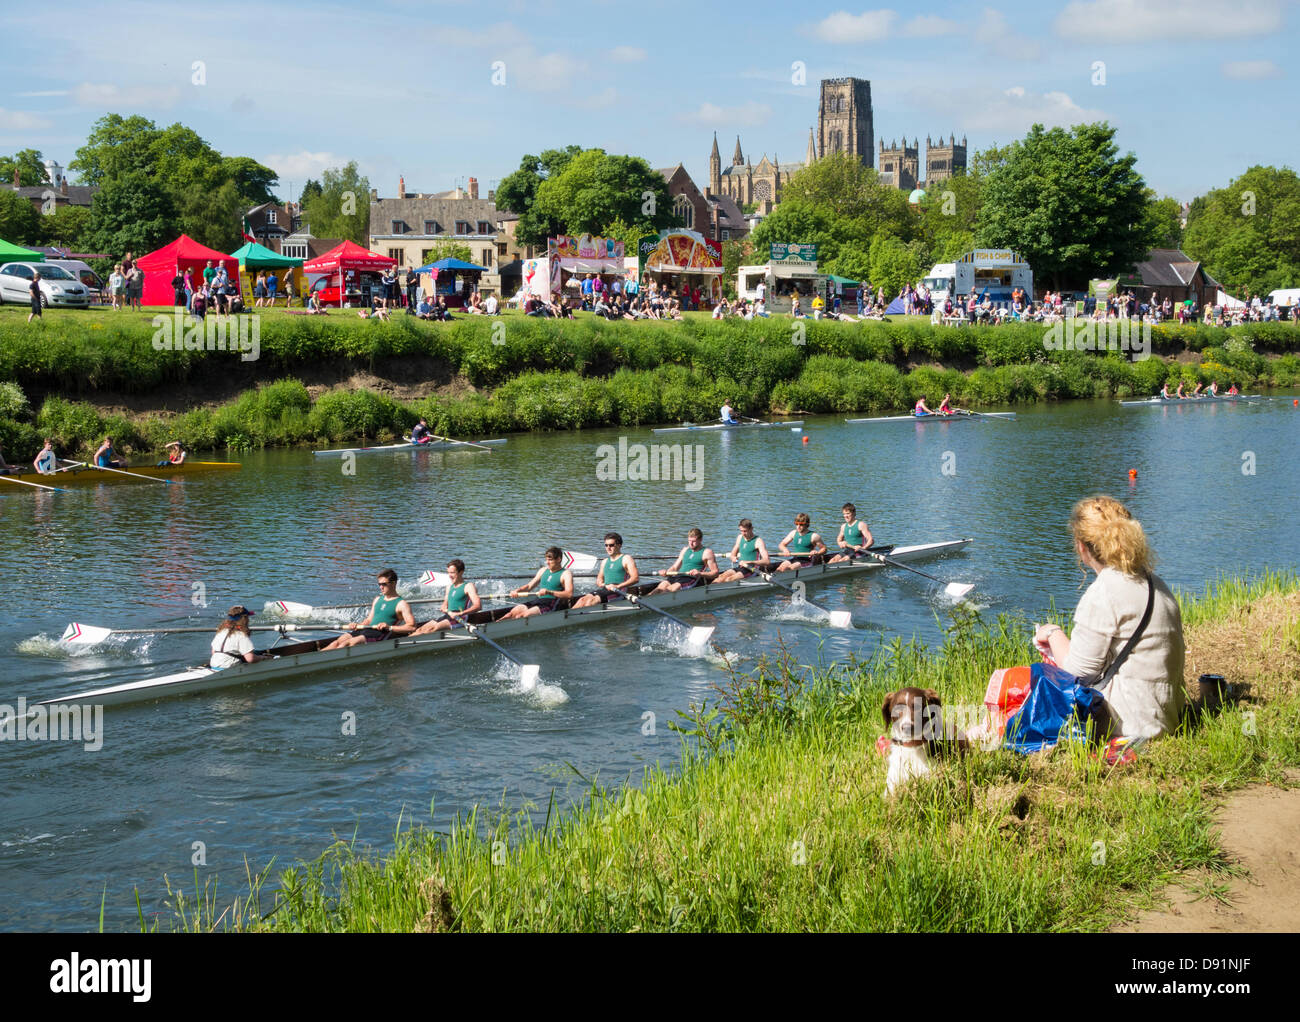 Durham rowing Regatta, Durham, England, UK Stock Photo